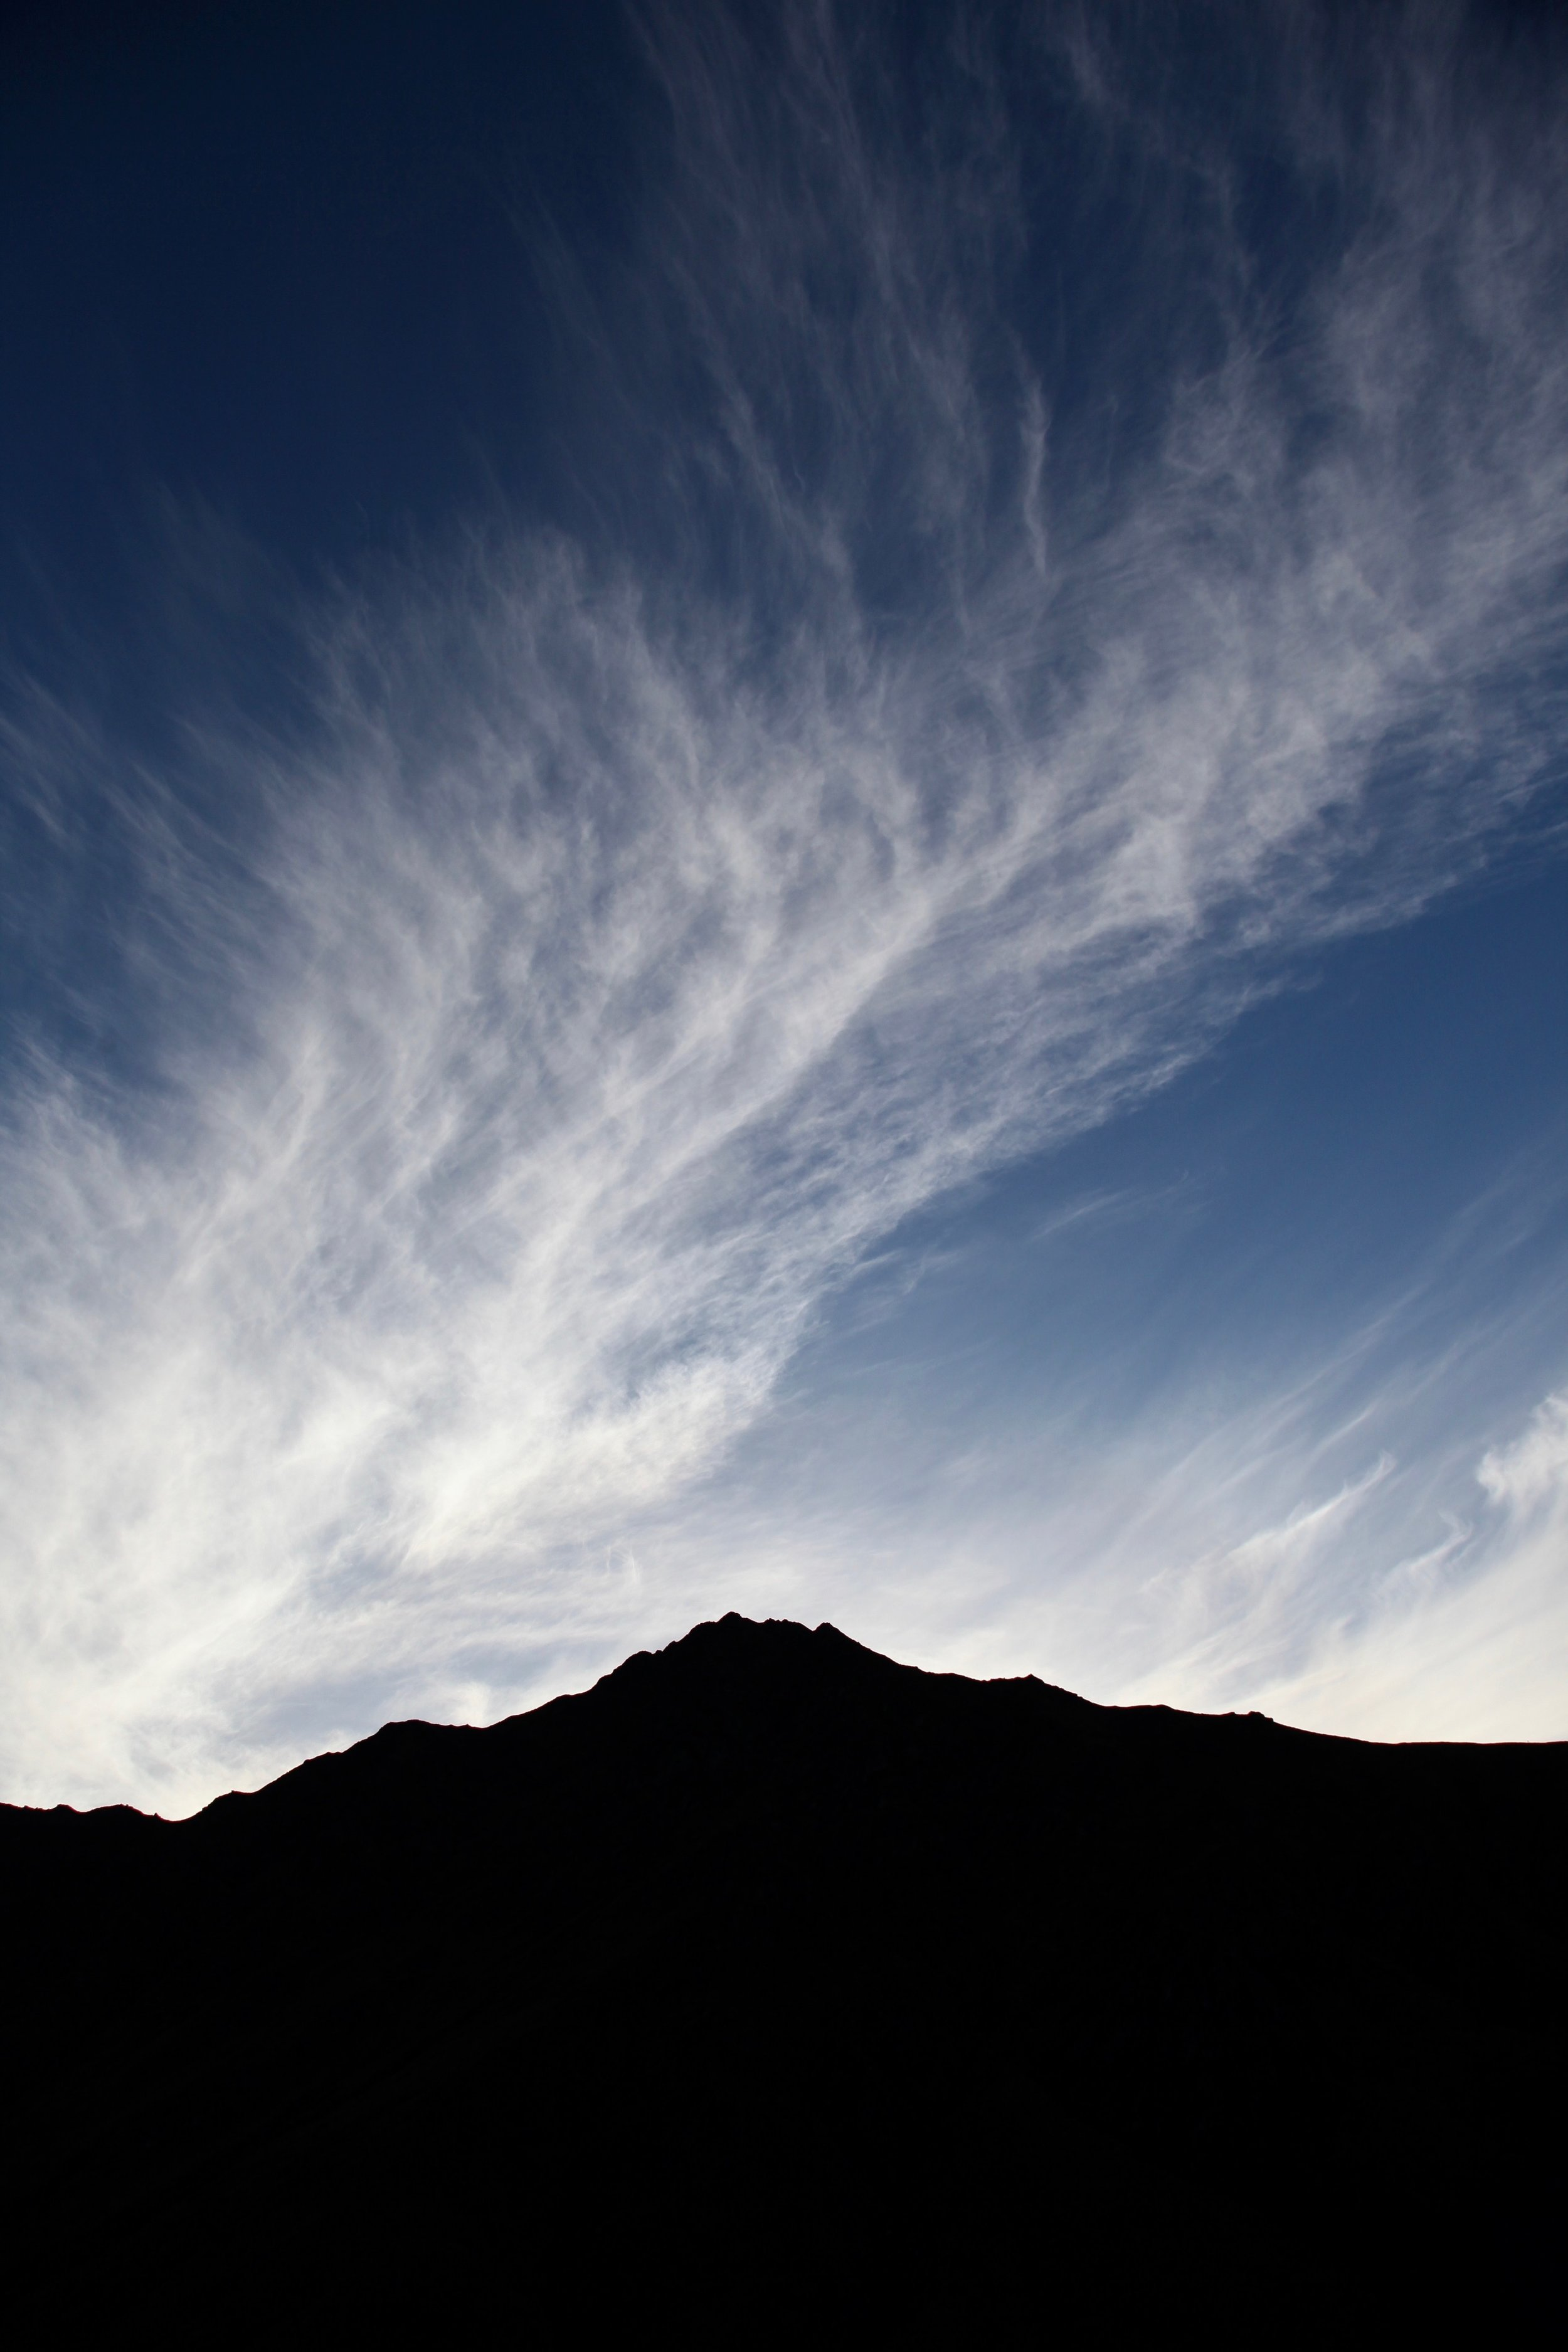 Last light and darkening skies, the Ben Lomond saddle walk takes you to 1326m and is about 4 hours return.